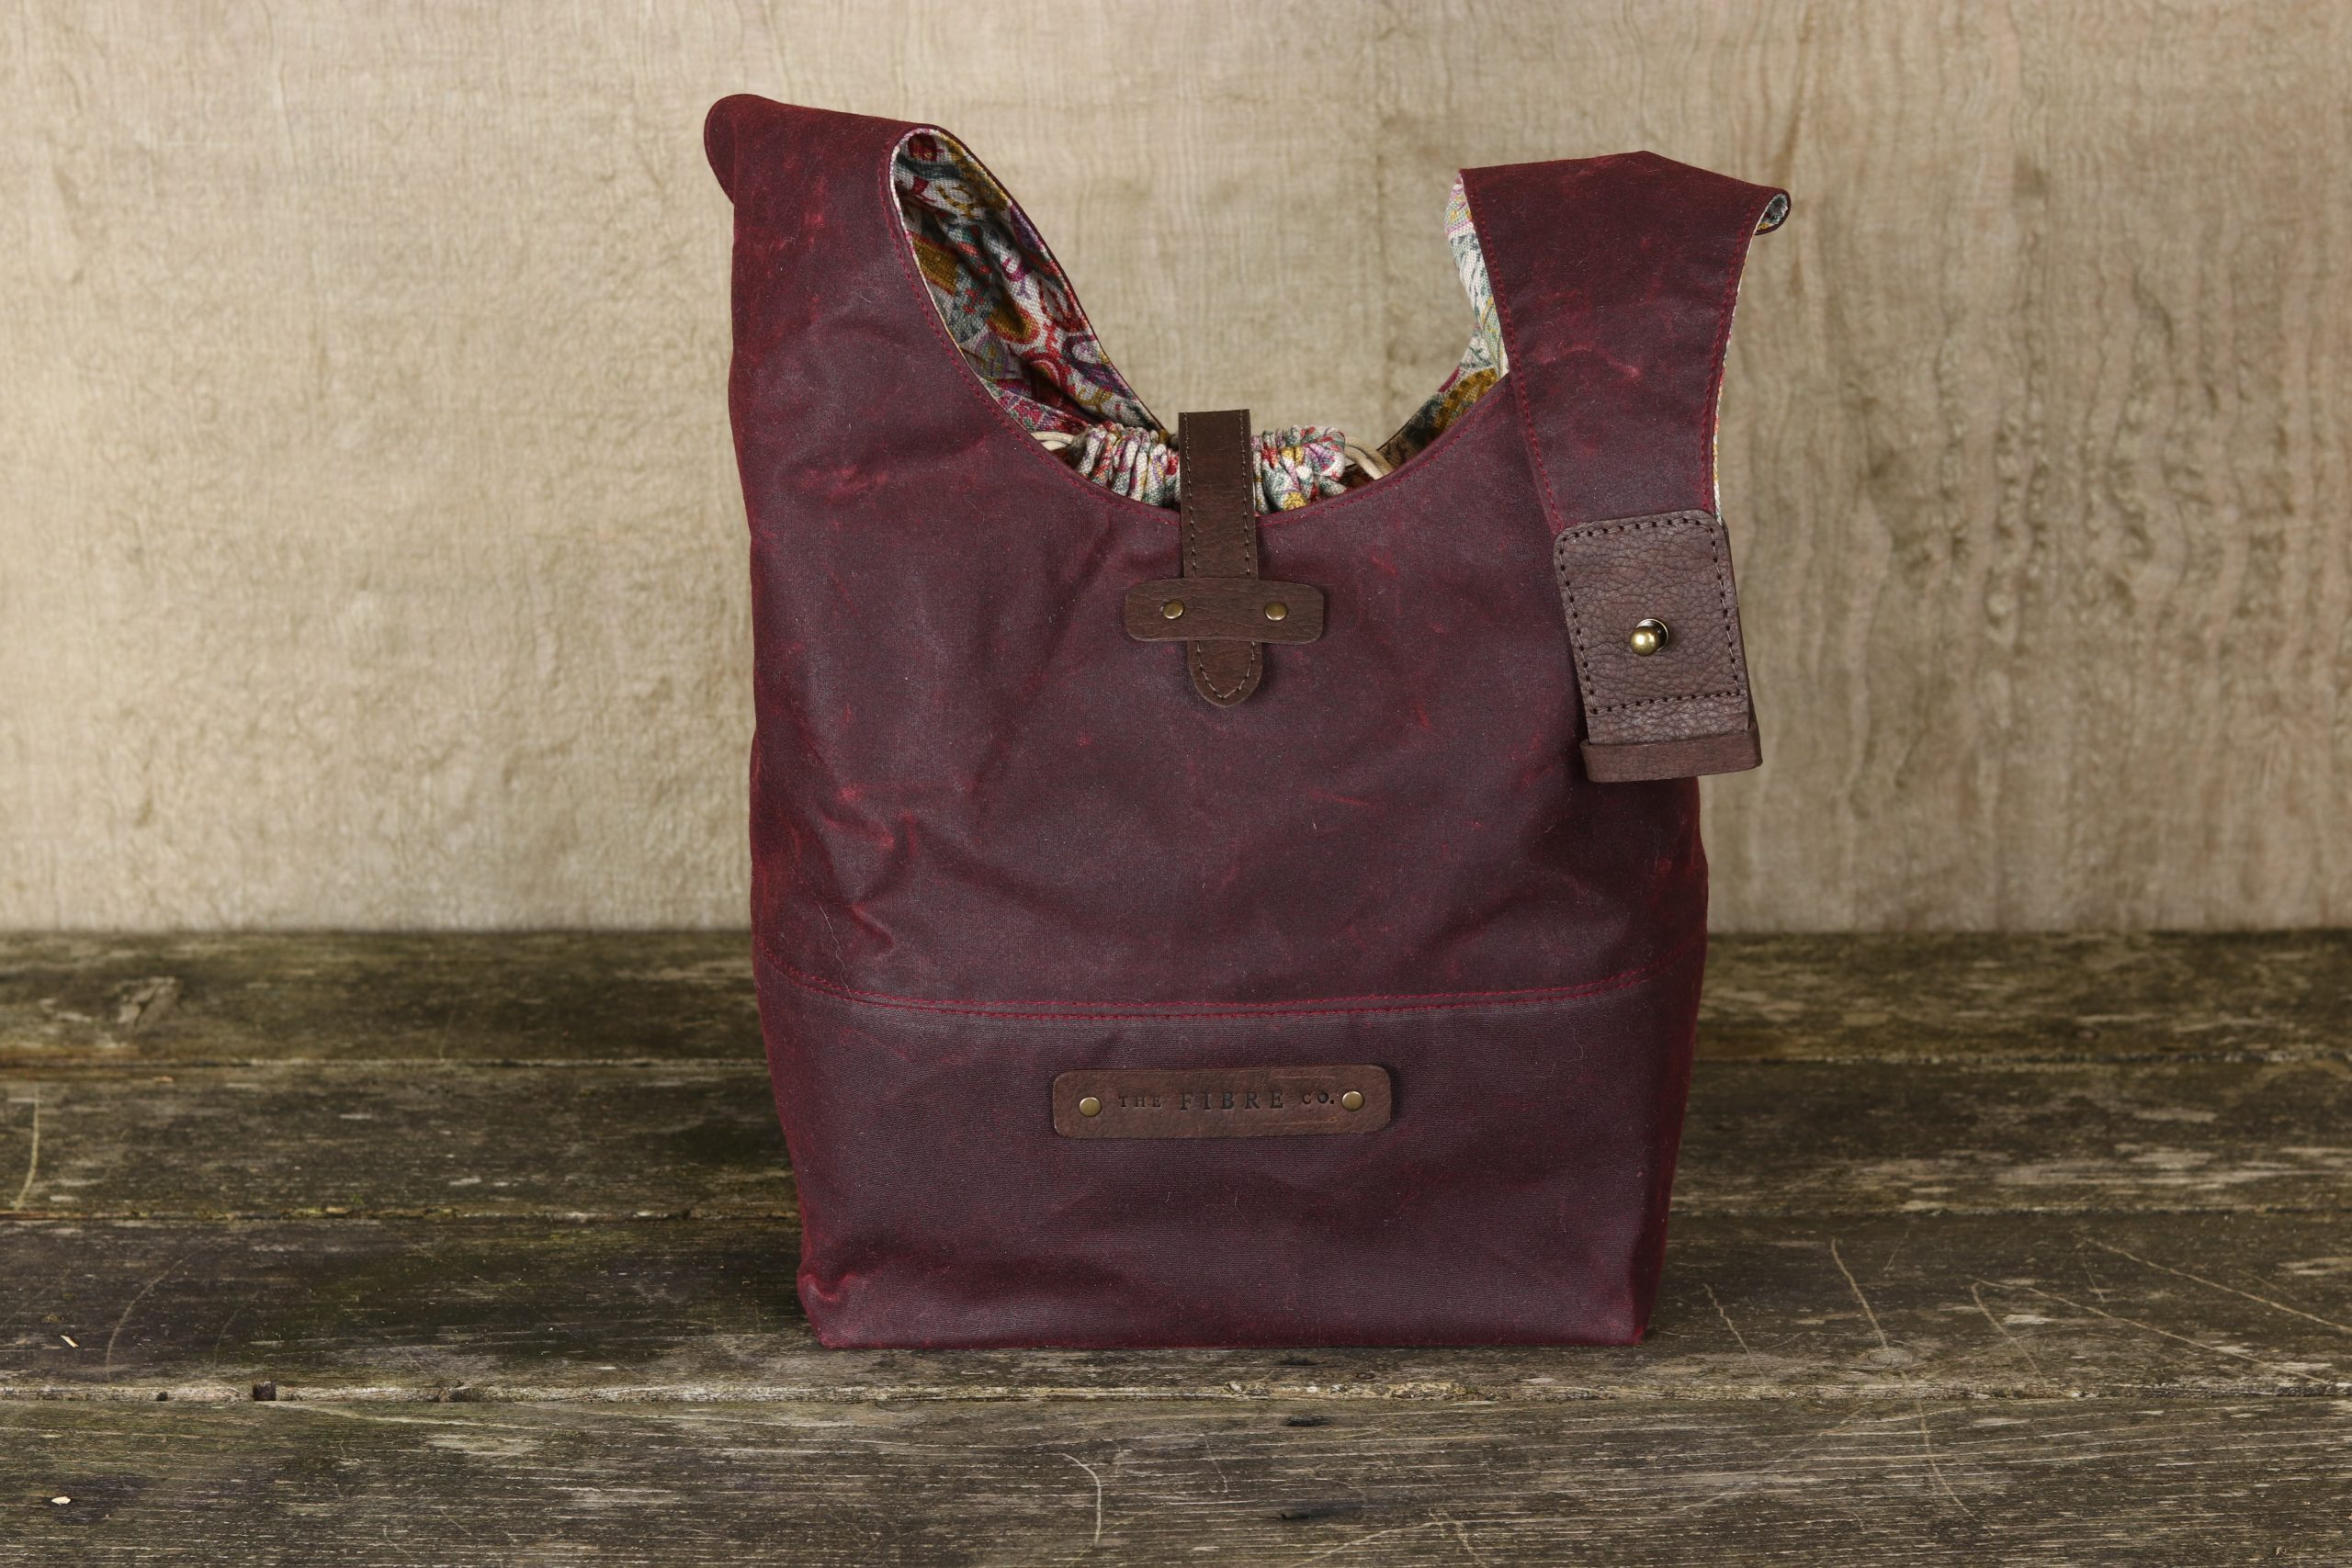 Waxed cotton bag with vegan leather details and brass handware. The image shows that you can release the bag strap.